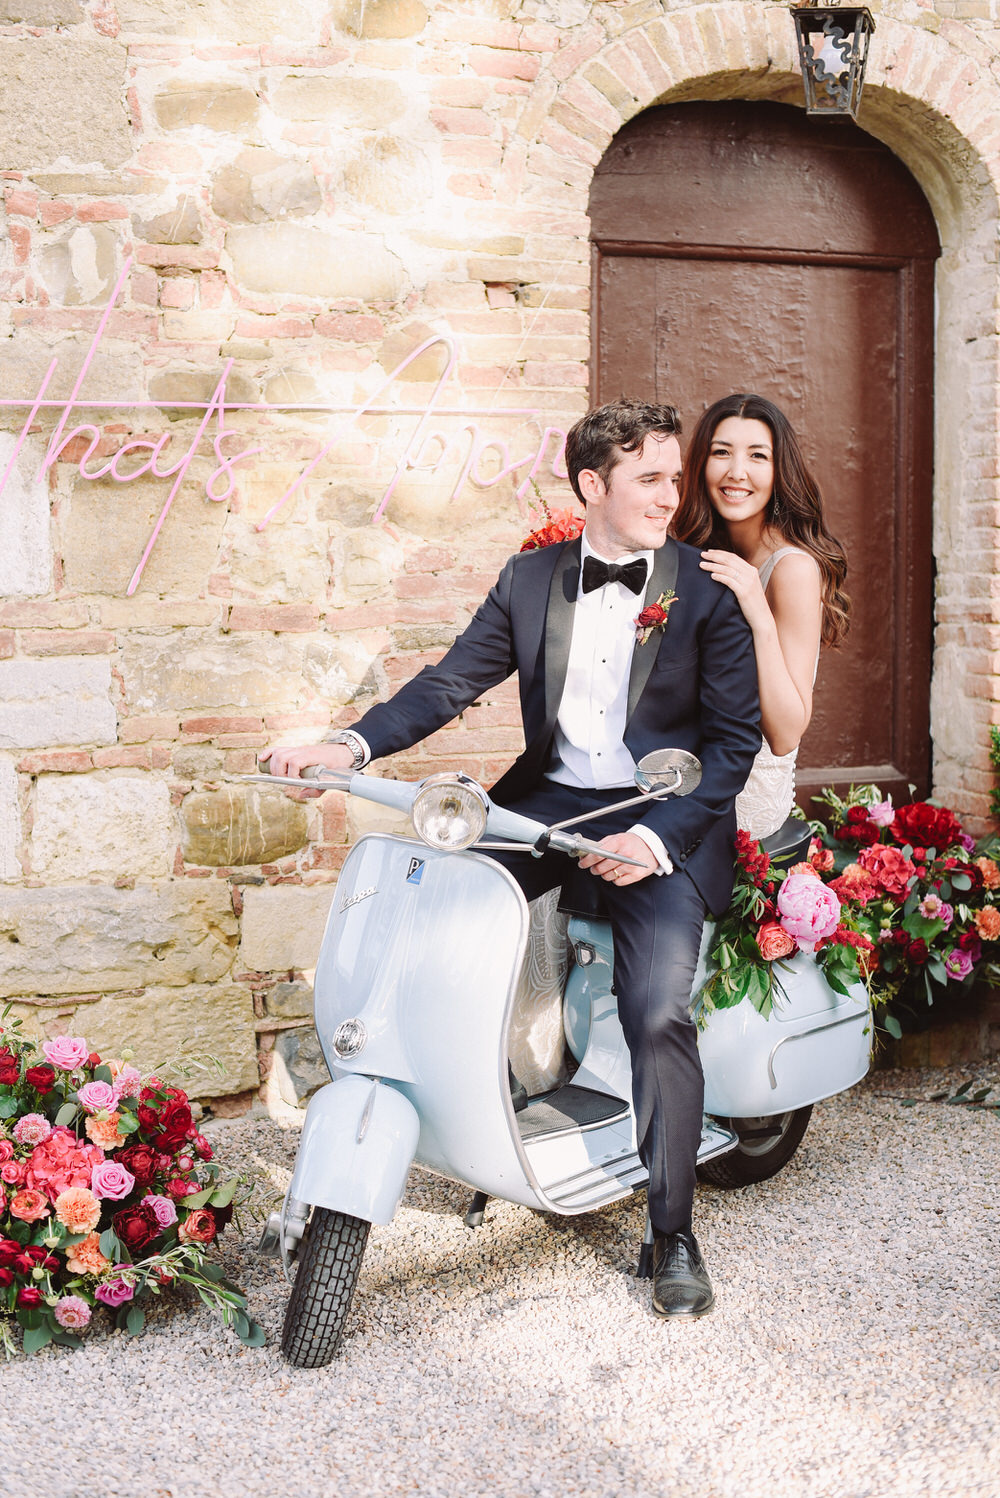 bride and groom getting ready to buzz away on their baby blue Vespa